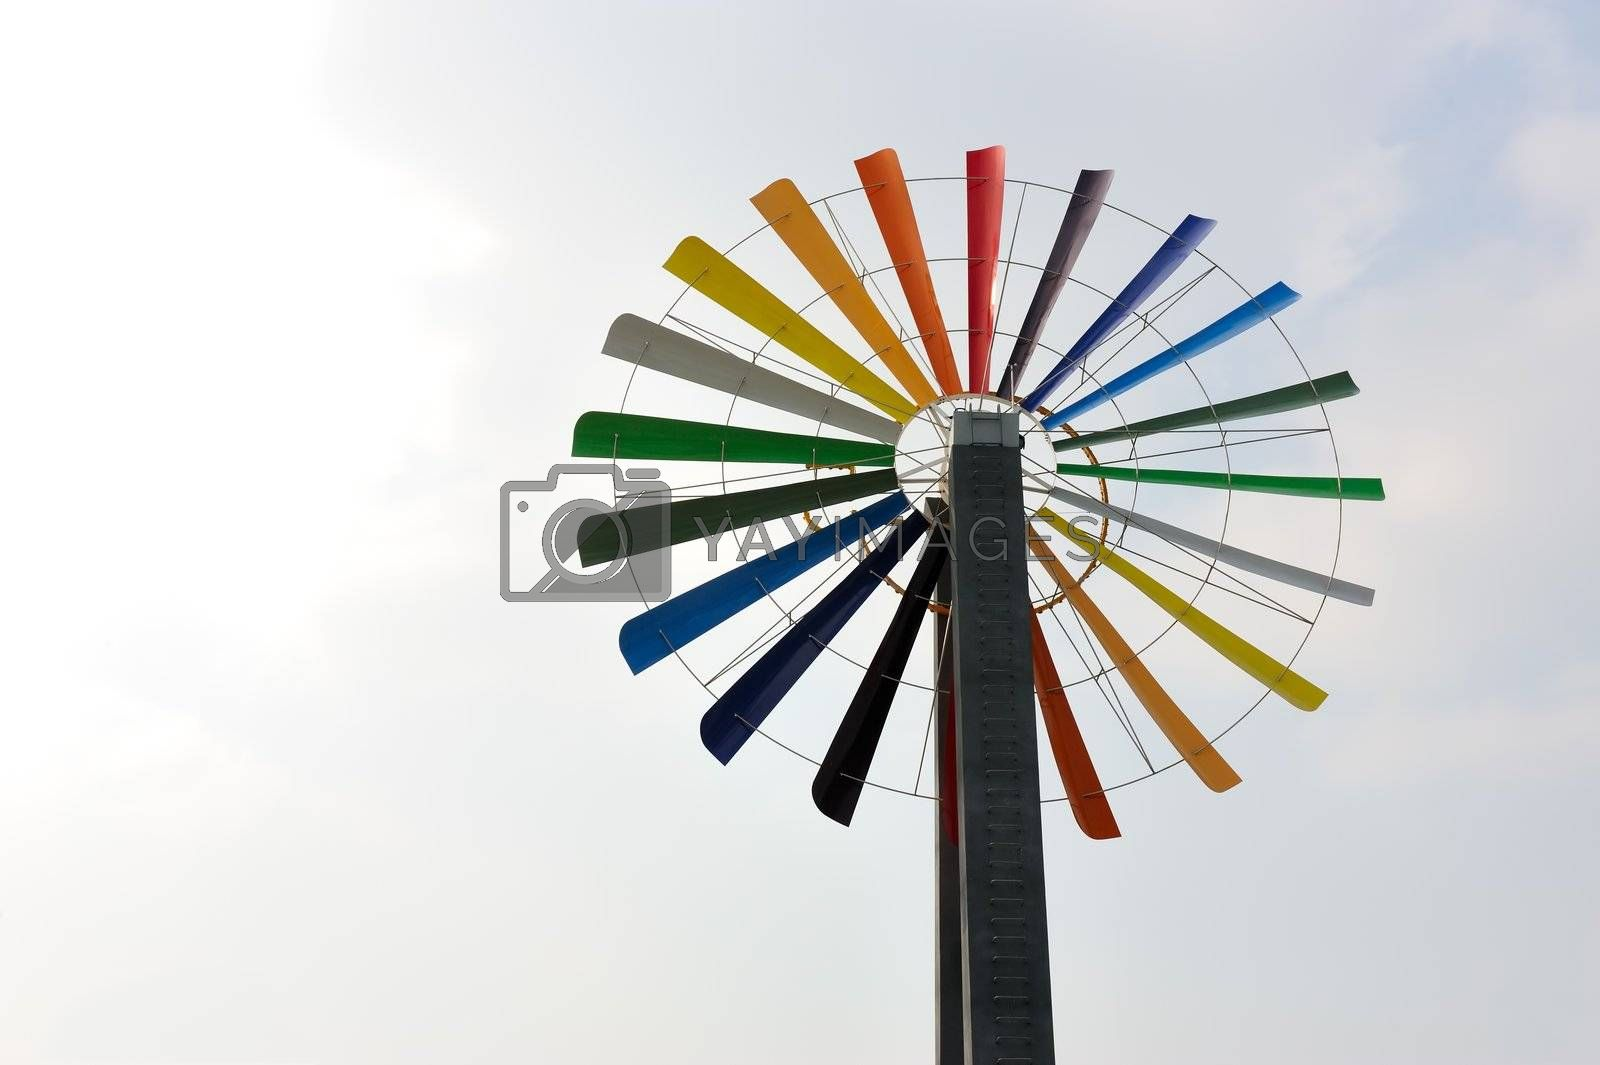 One colorful windmill under the blue sky